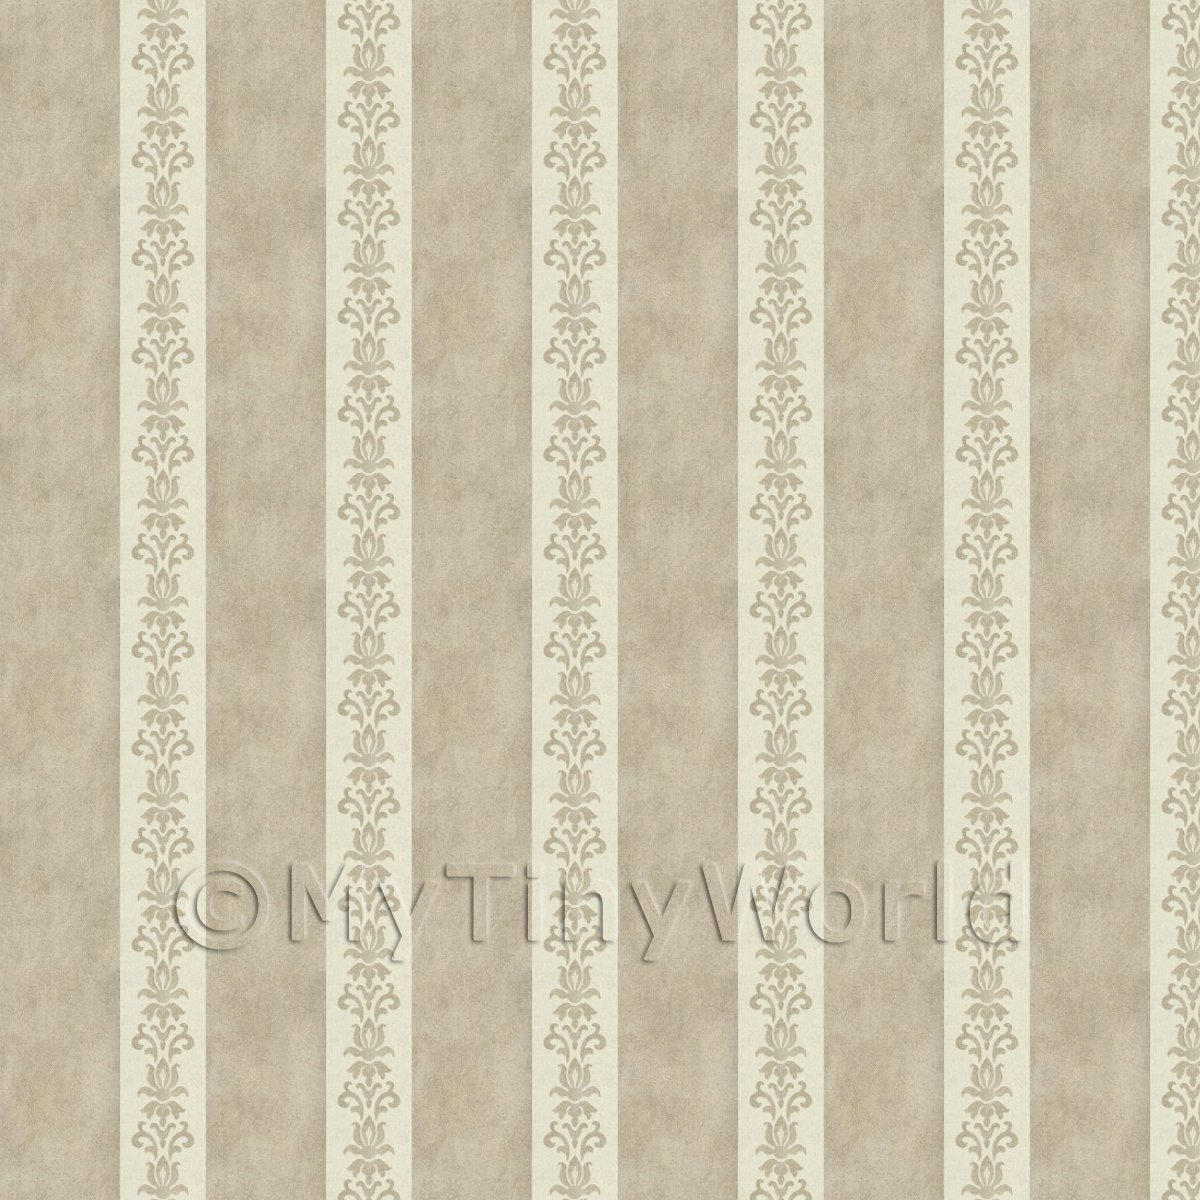 Pack of 5 Dolls House Light Chocolate Floral Stripe Wallpaper Sheets